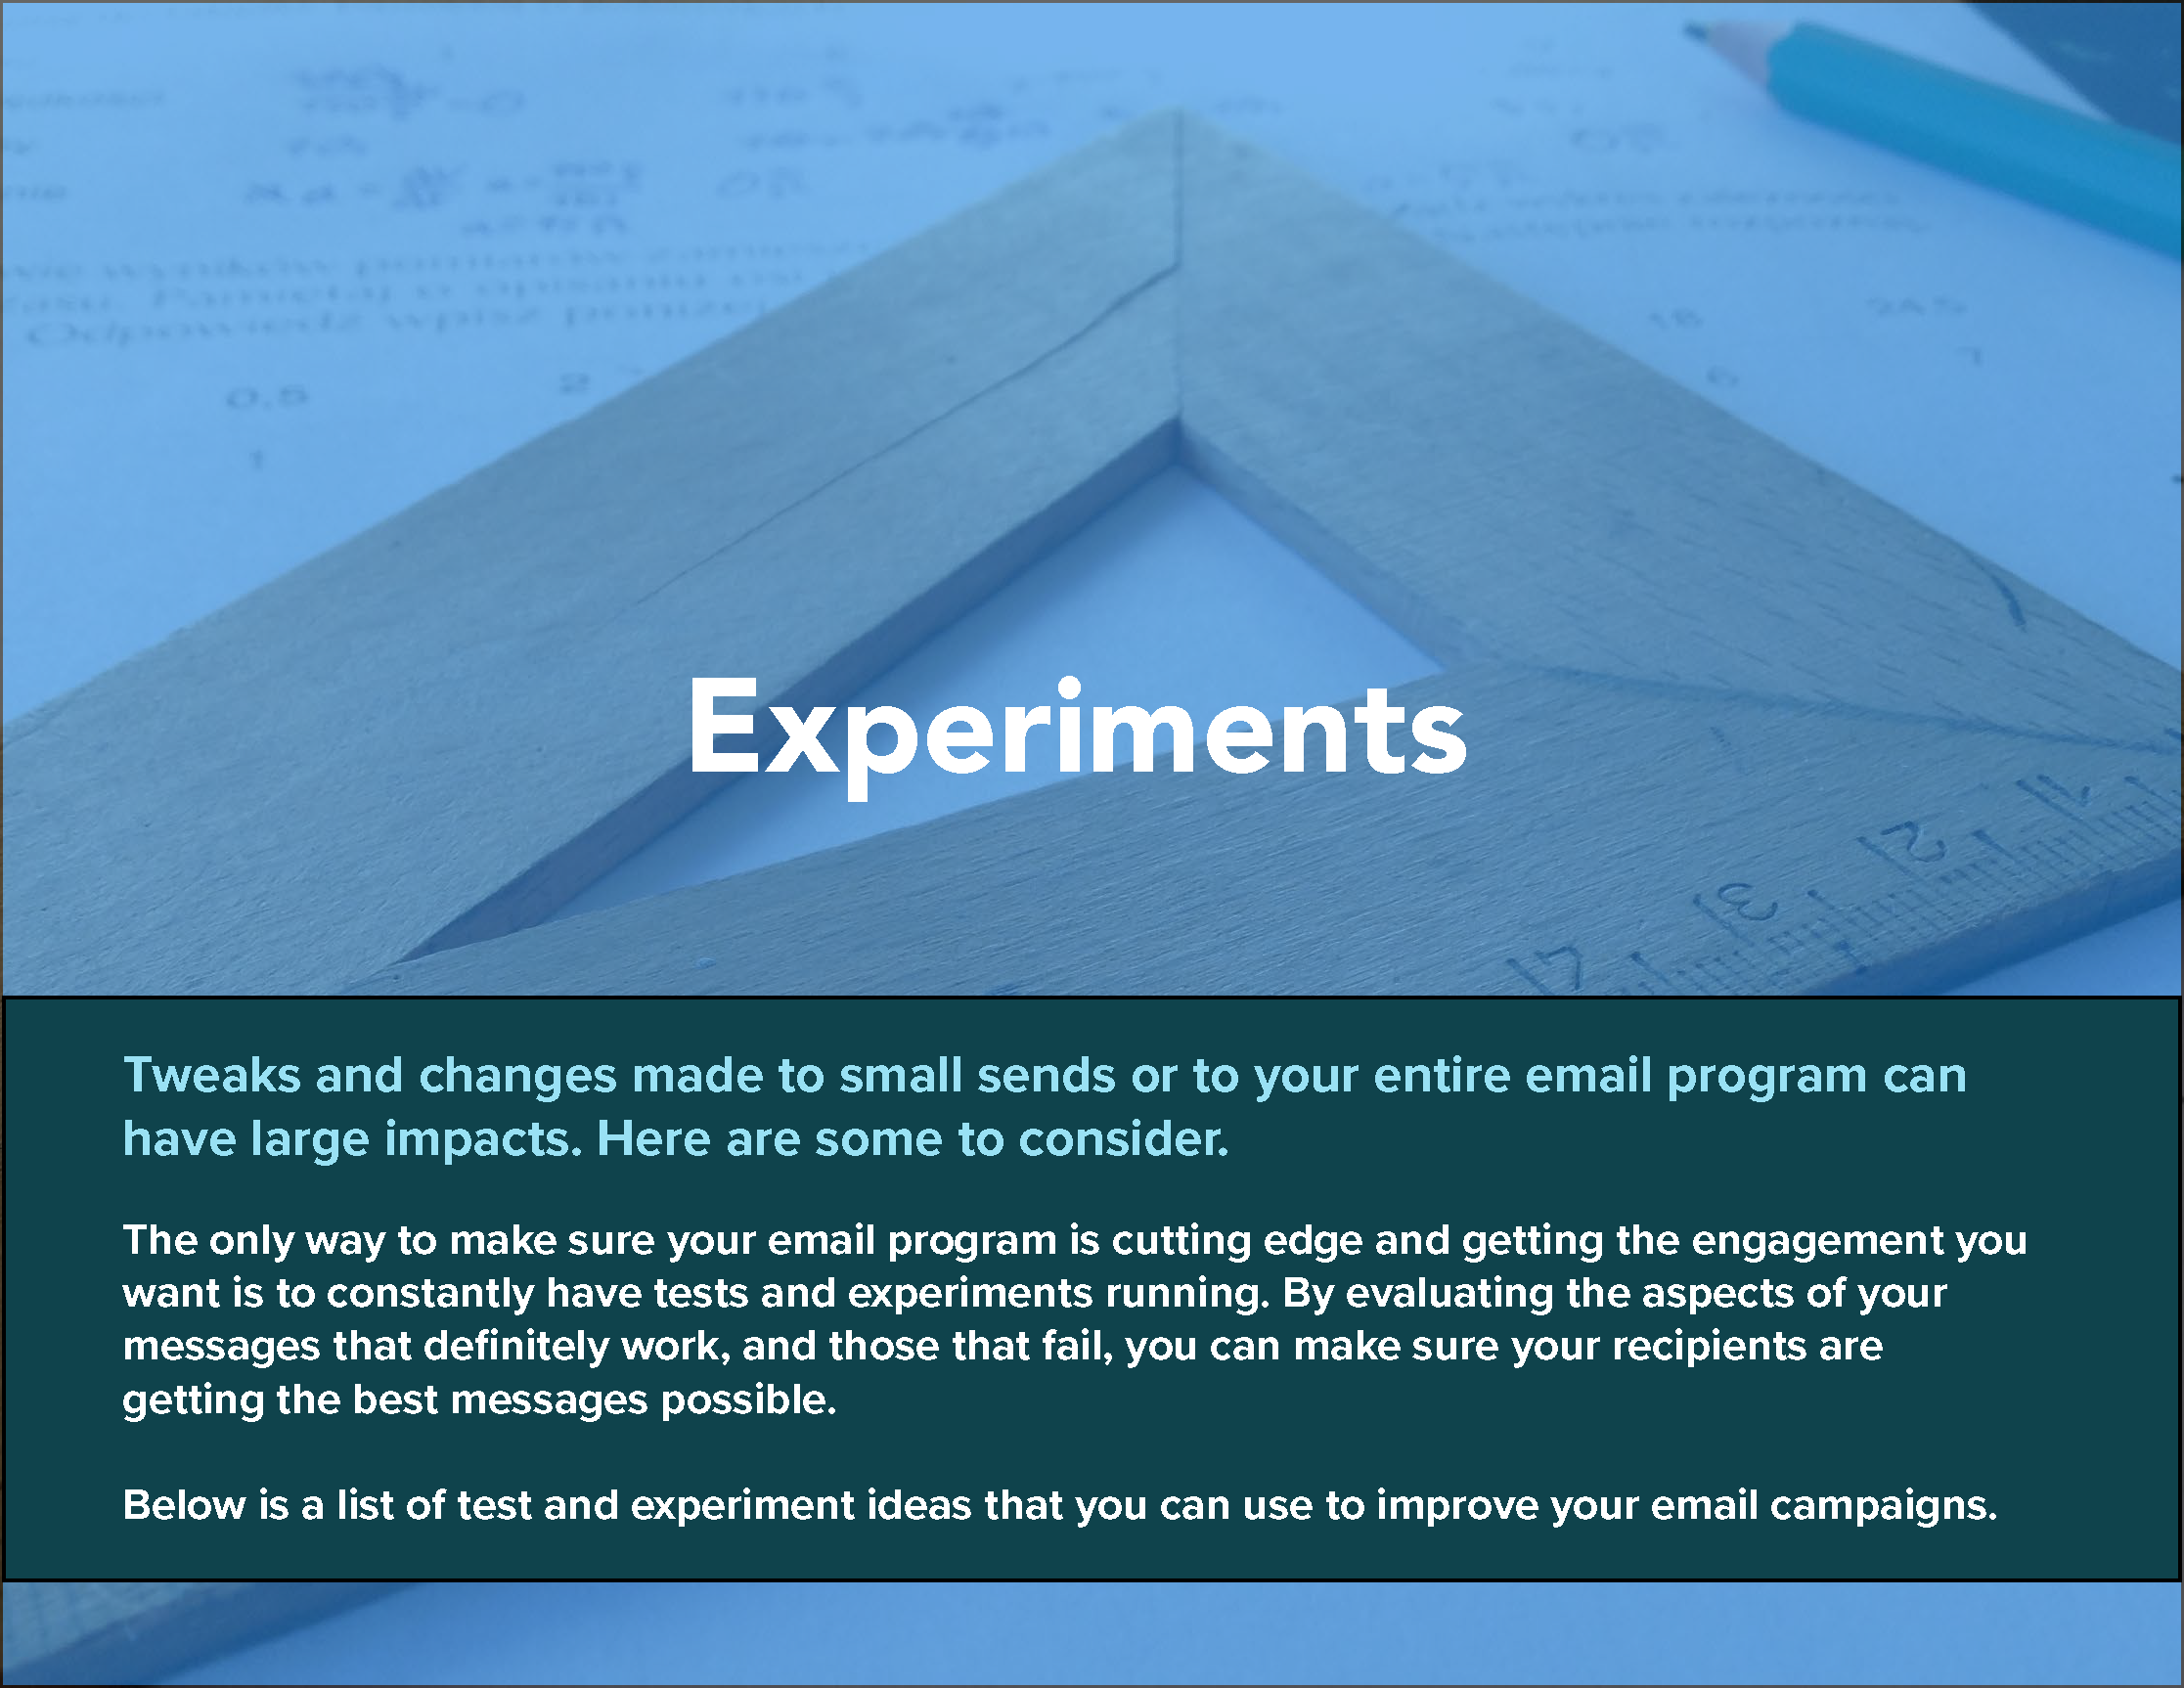 Email_Marketing Myths_Experiments_Inspiration Ebook_5.png